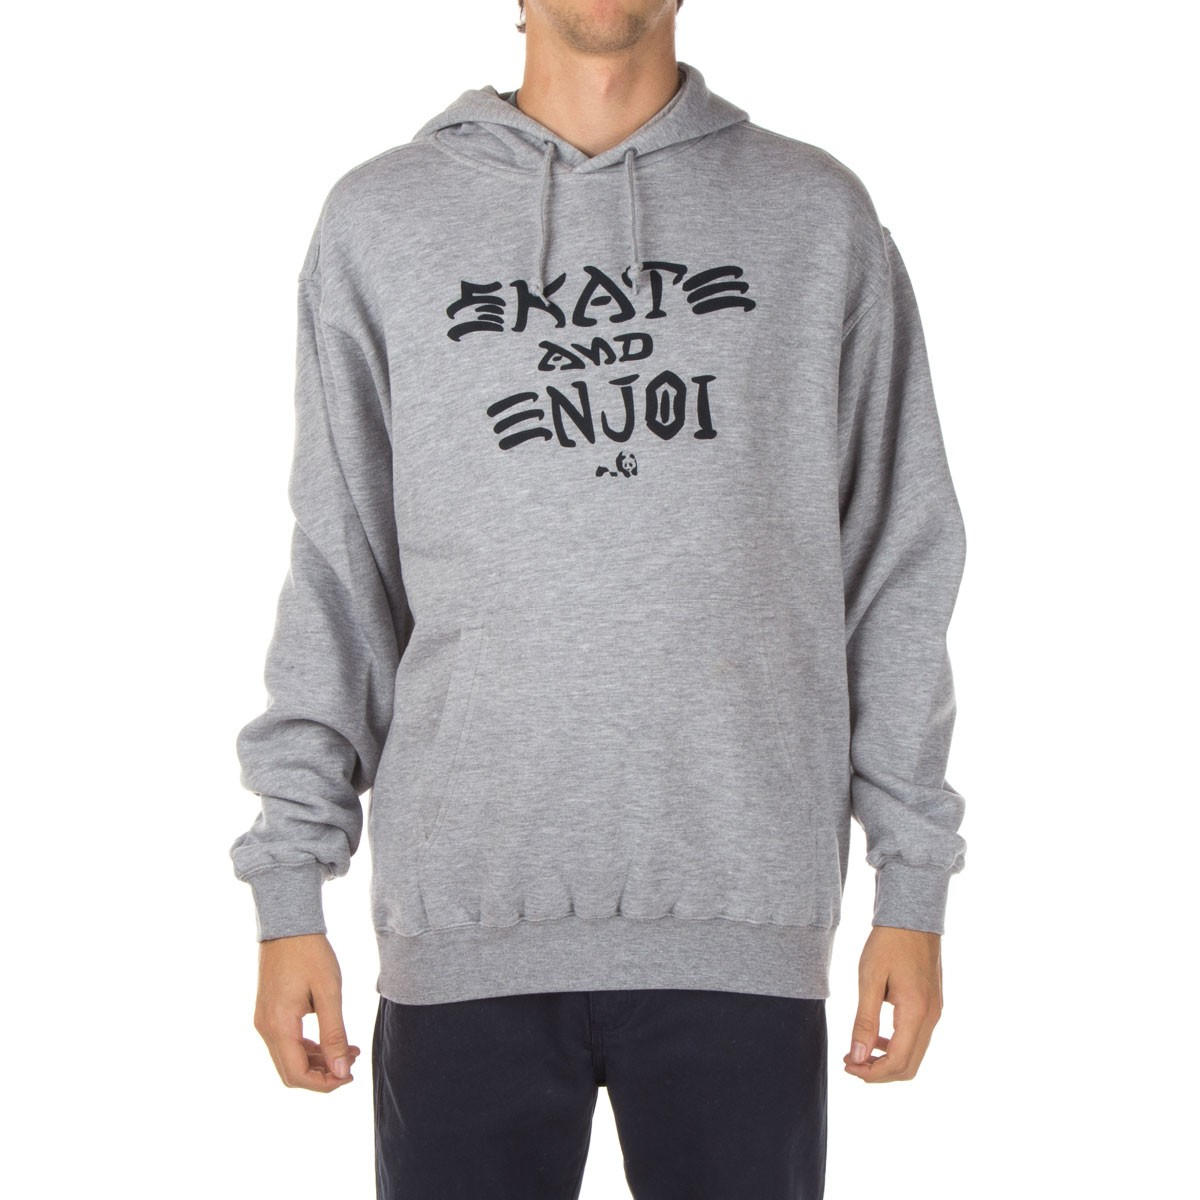 Skate and Enjoi Pullover Hoodie - Heather Grey